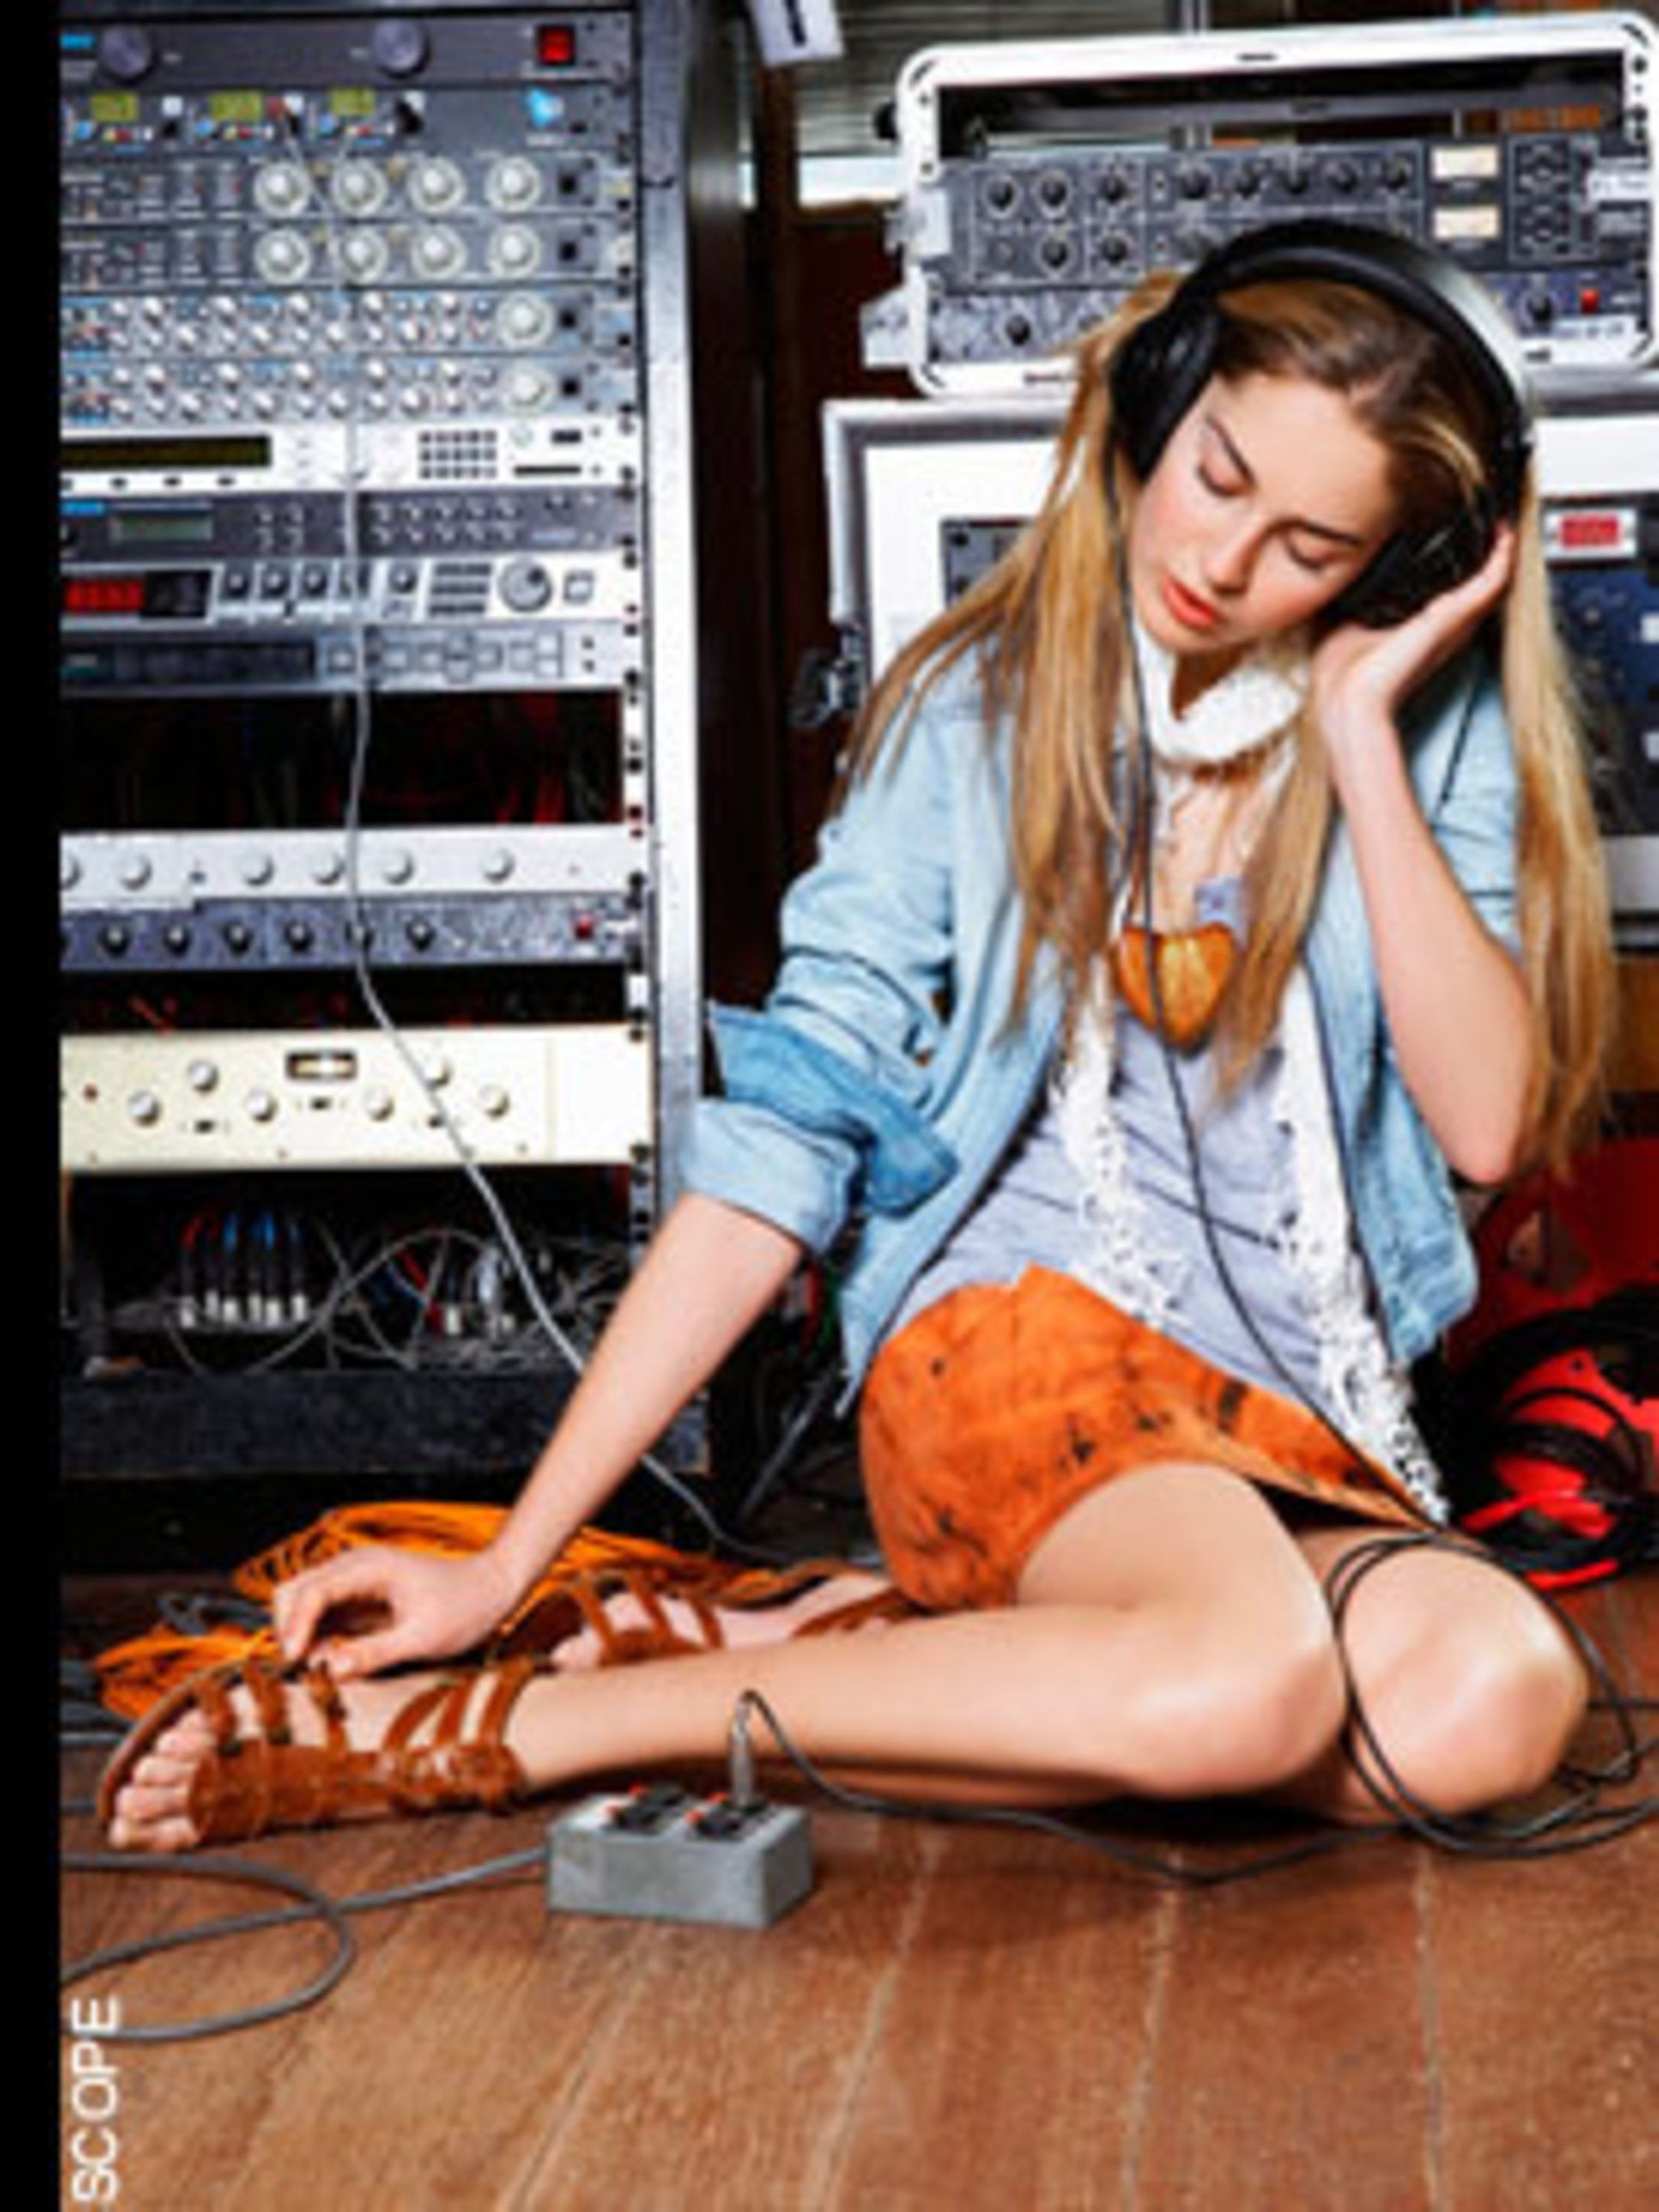 <p>With the help of DJs Dan Lywood and Ben Bridgewater, who have provided the music for Givenchy and Vivienne Westwood's catwalk shows, get the ultimate Christmas party mash-up. Hand over your iPod and they do the rest - then just plug it in and get shaki